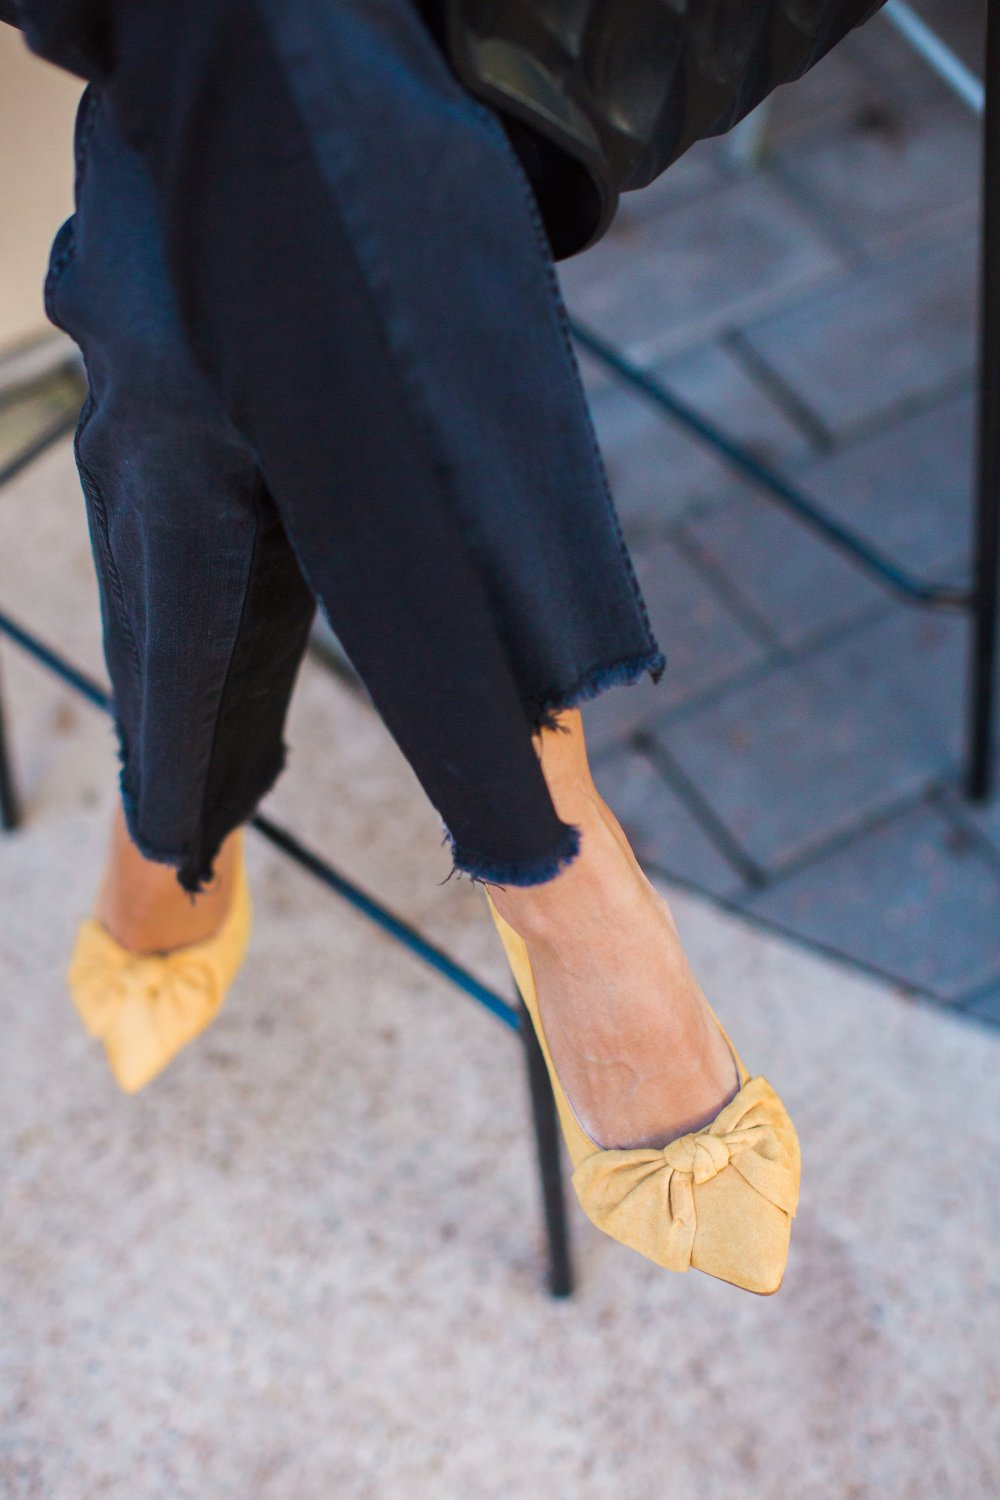 These shoes! They are a gorgeous shade of yellow and the bow is the perfect, girly detail!